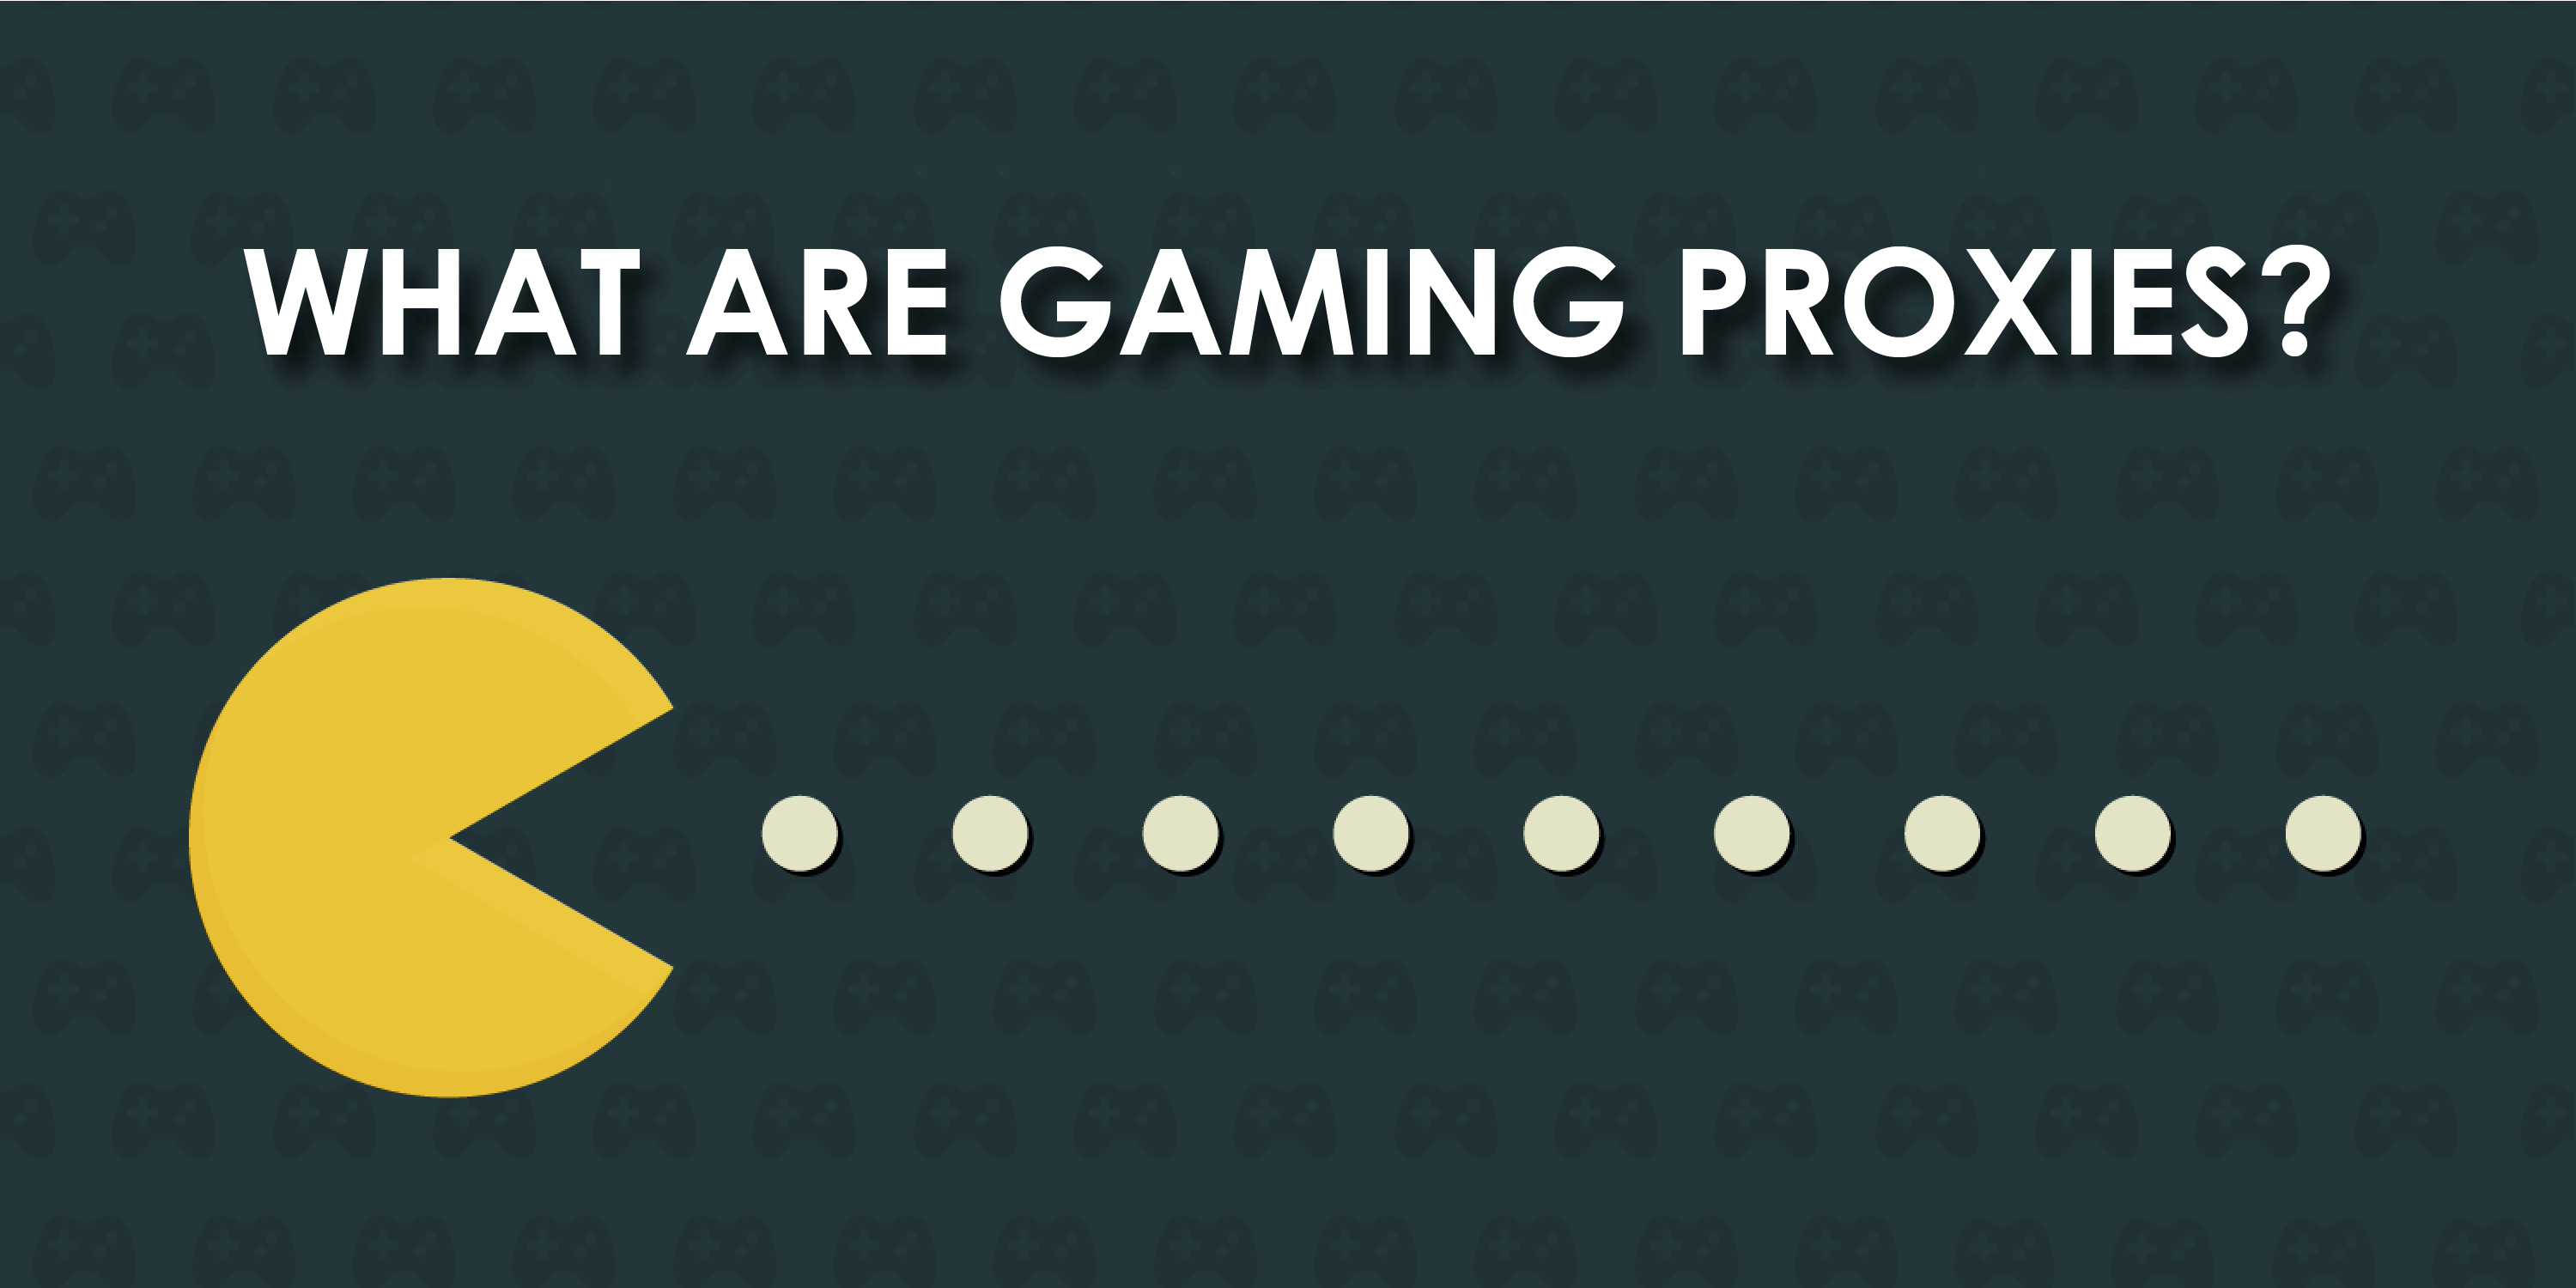 what are \\\[gaming proxies](https://limeproxies.netlify.com/blog/the-ultimate-guide-to-buy-private-proxies/)?